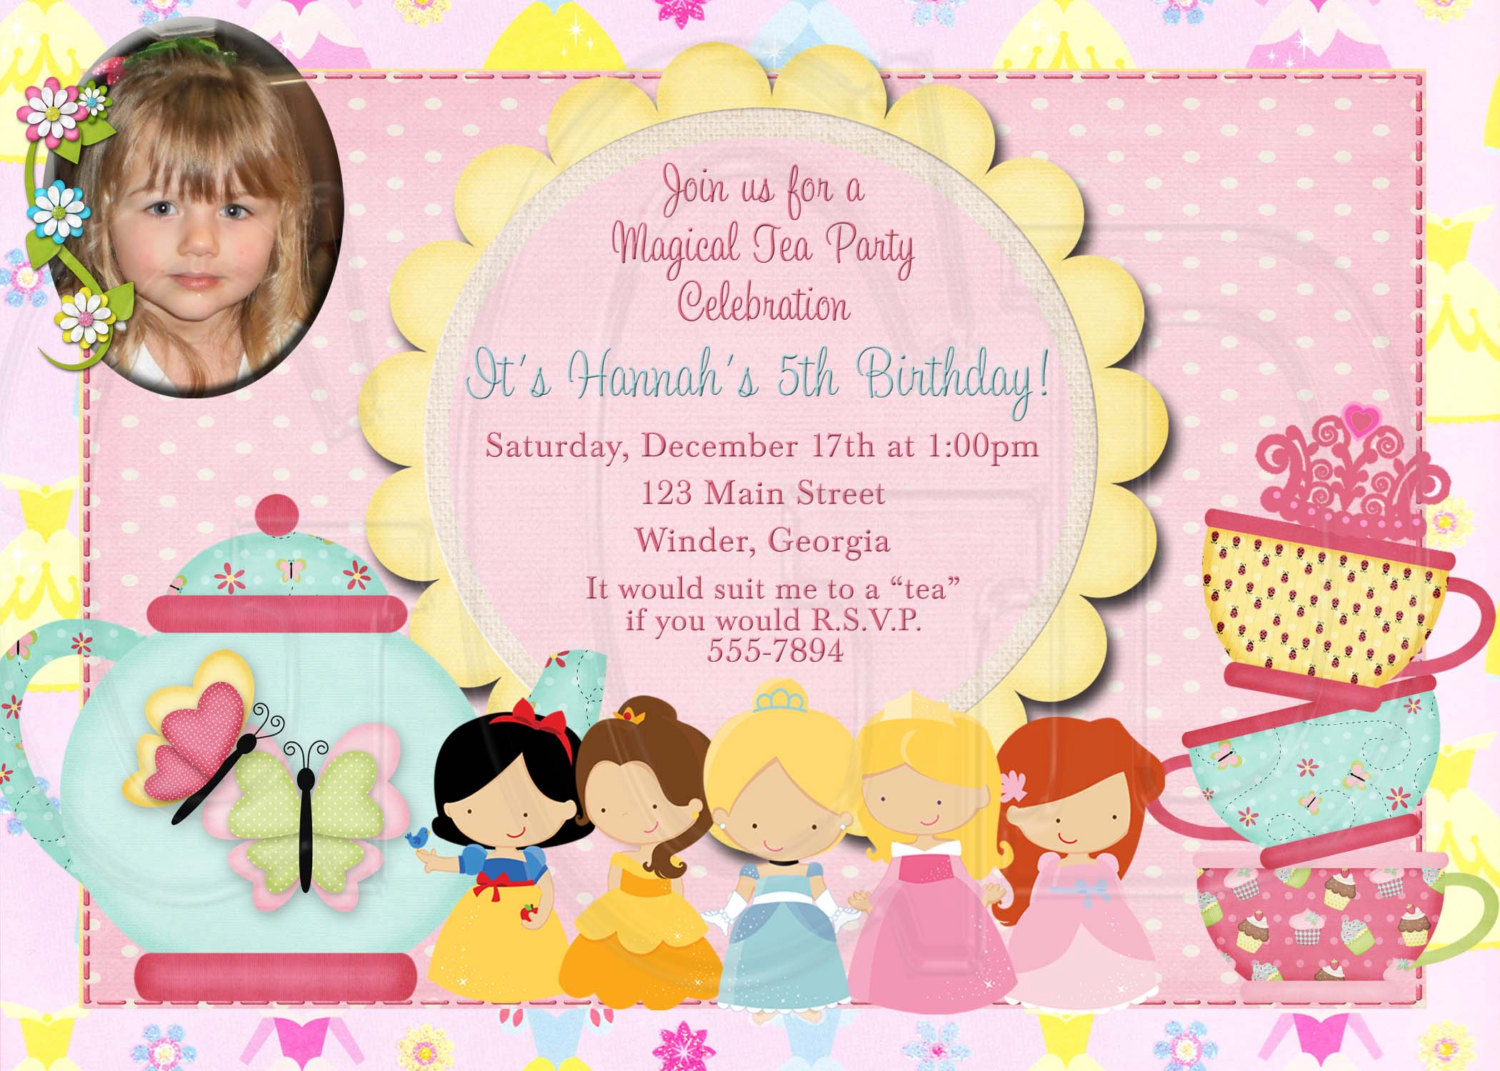 Tea Party clipart disney princess Invitation Princess Digital Birthday Princess